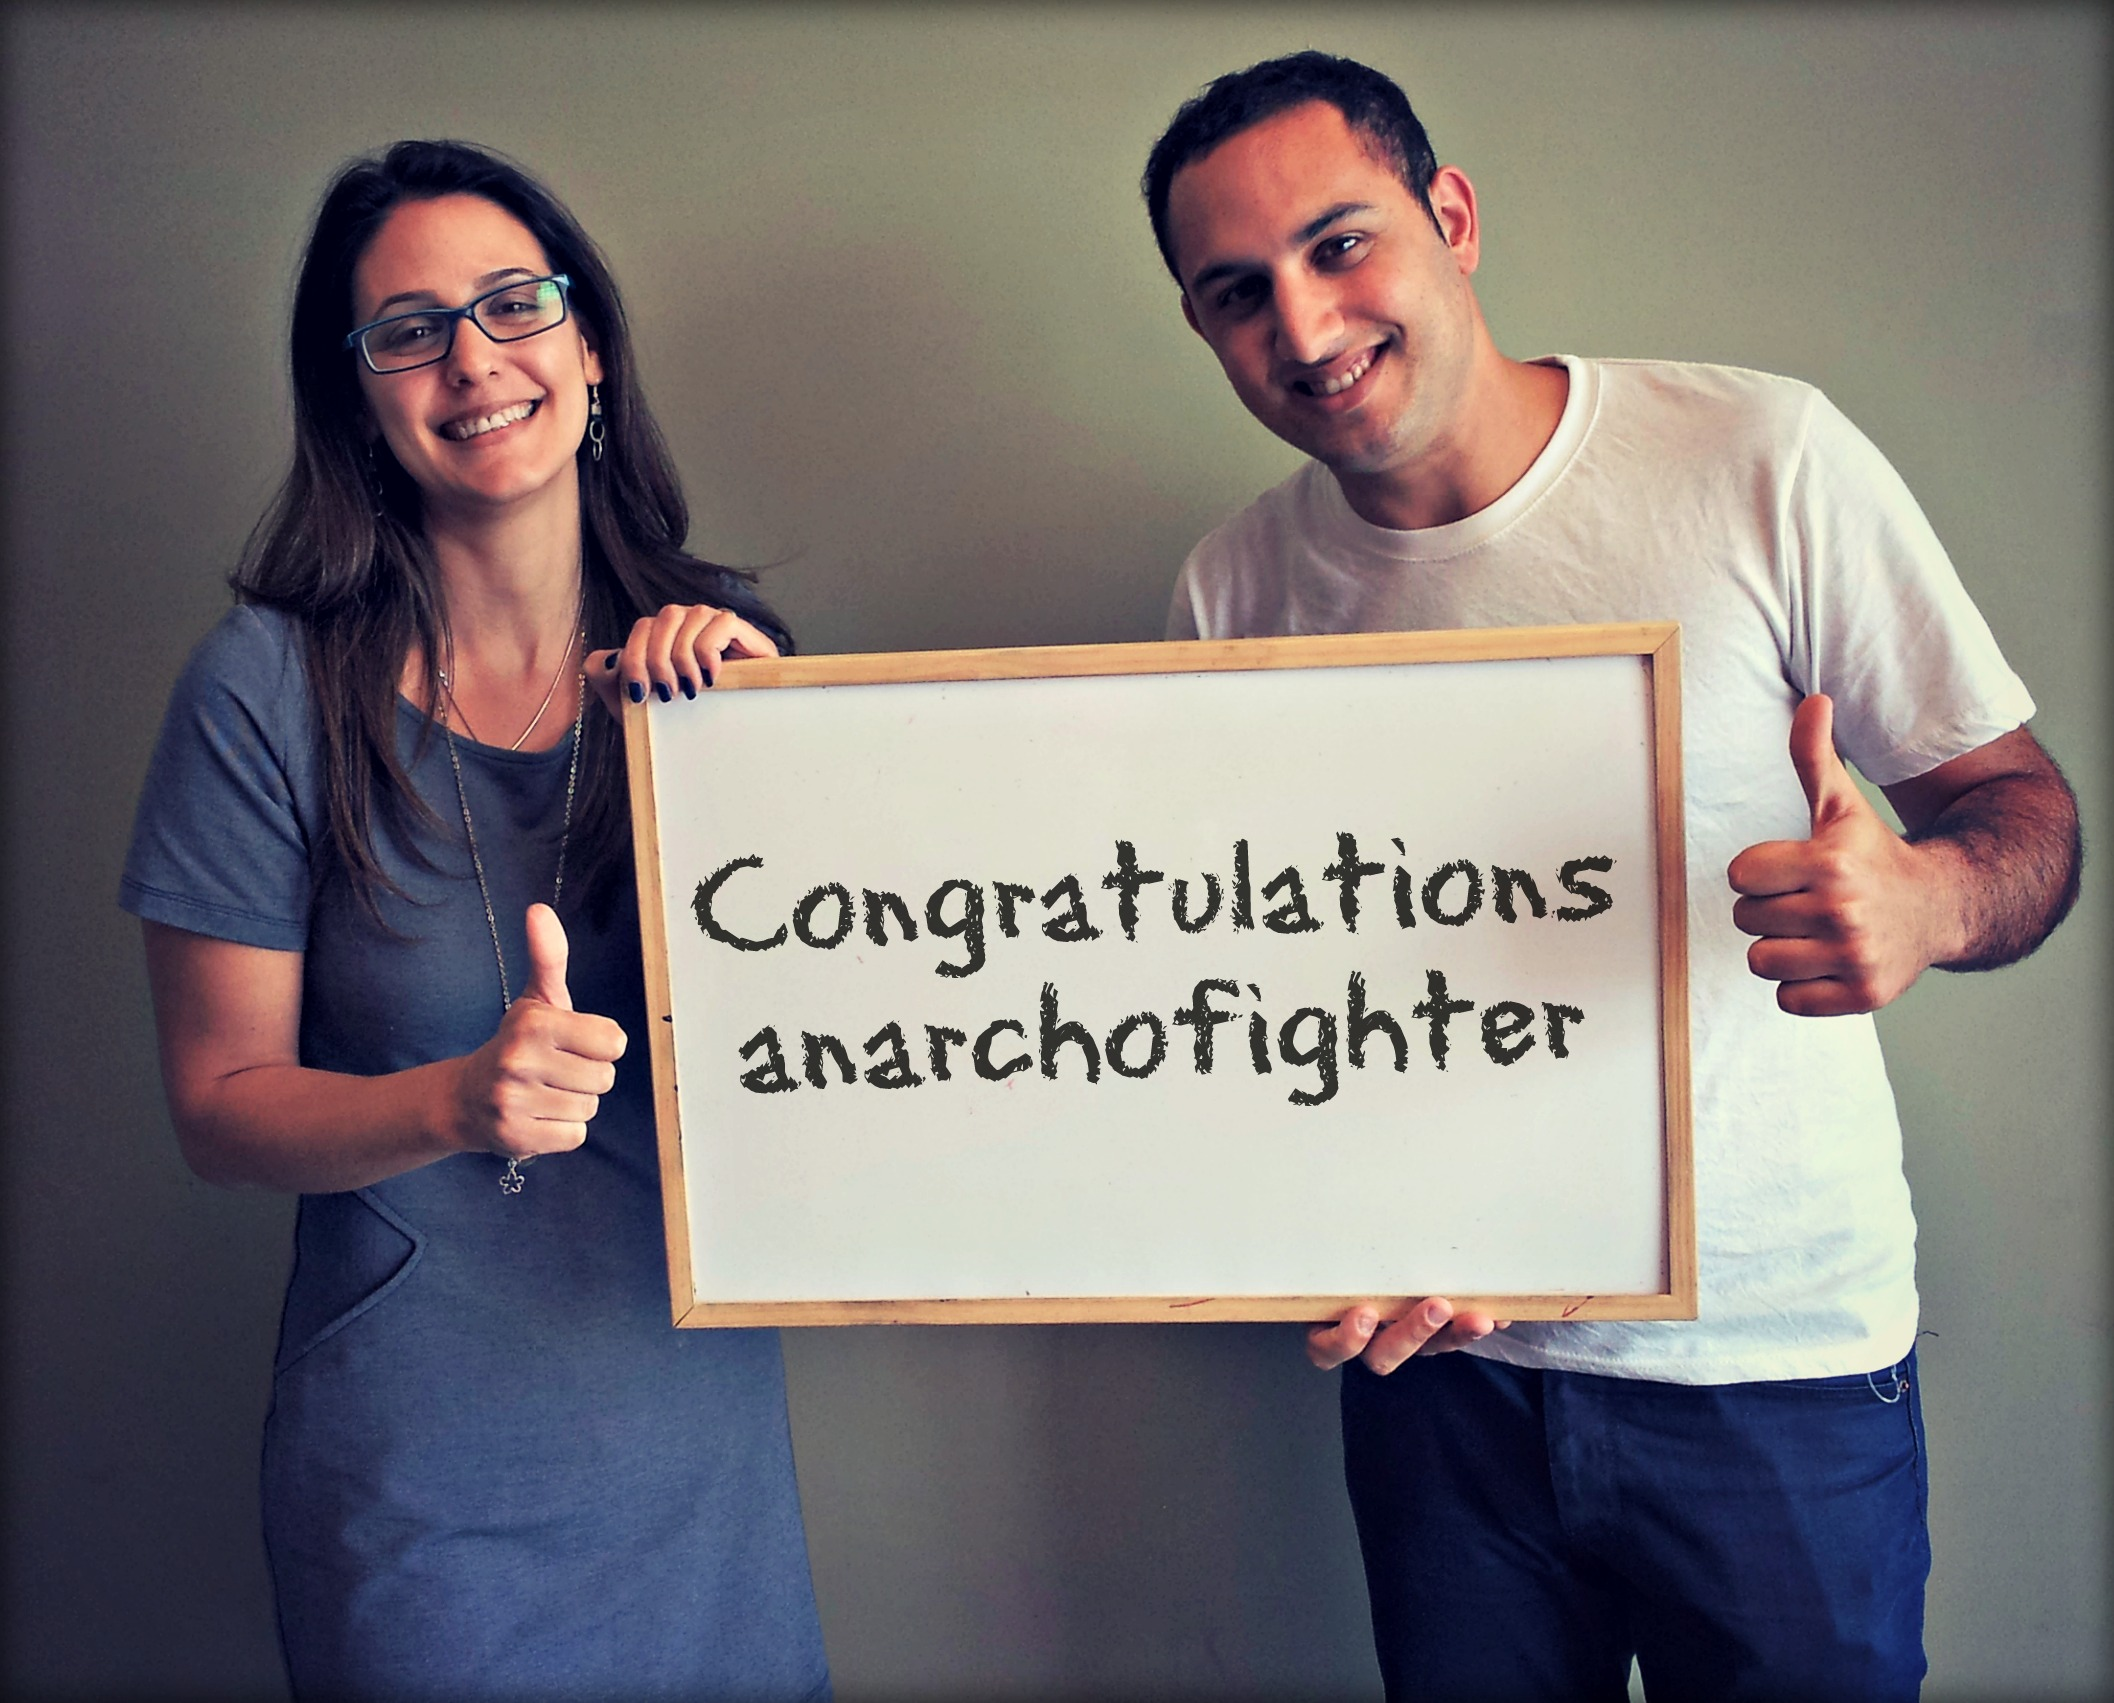 Congratulations anarchofighter!